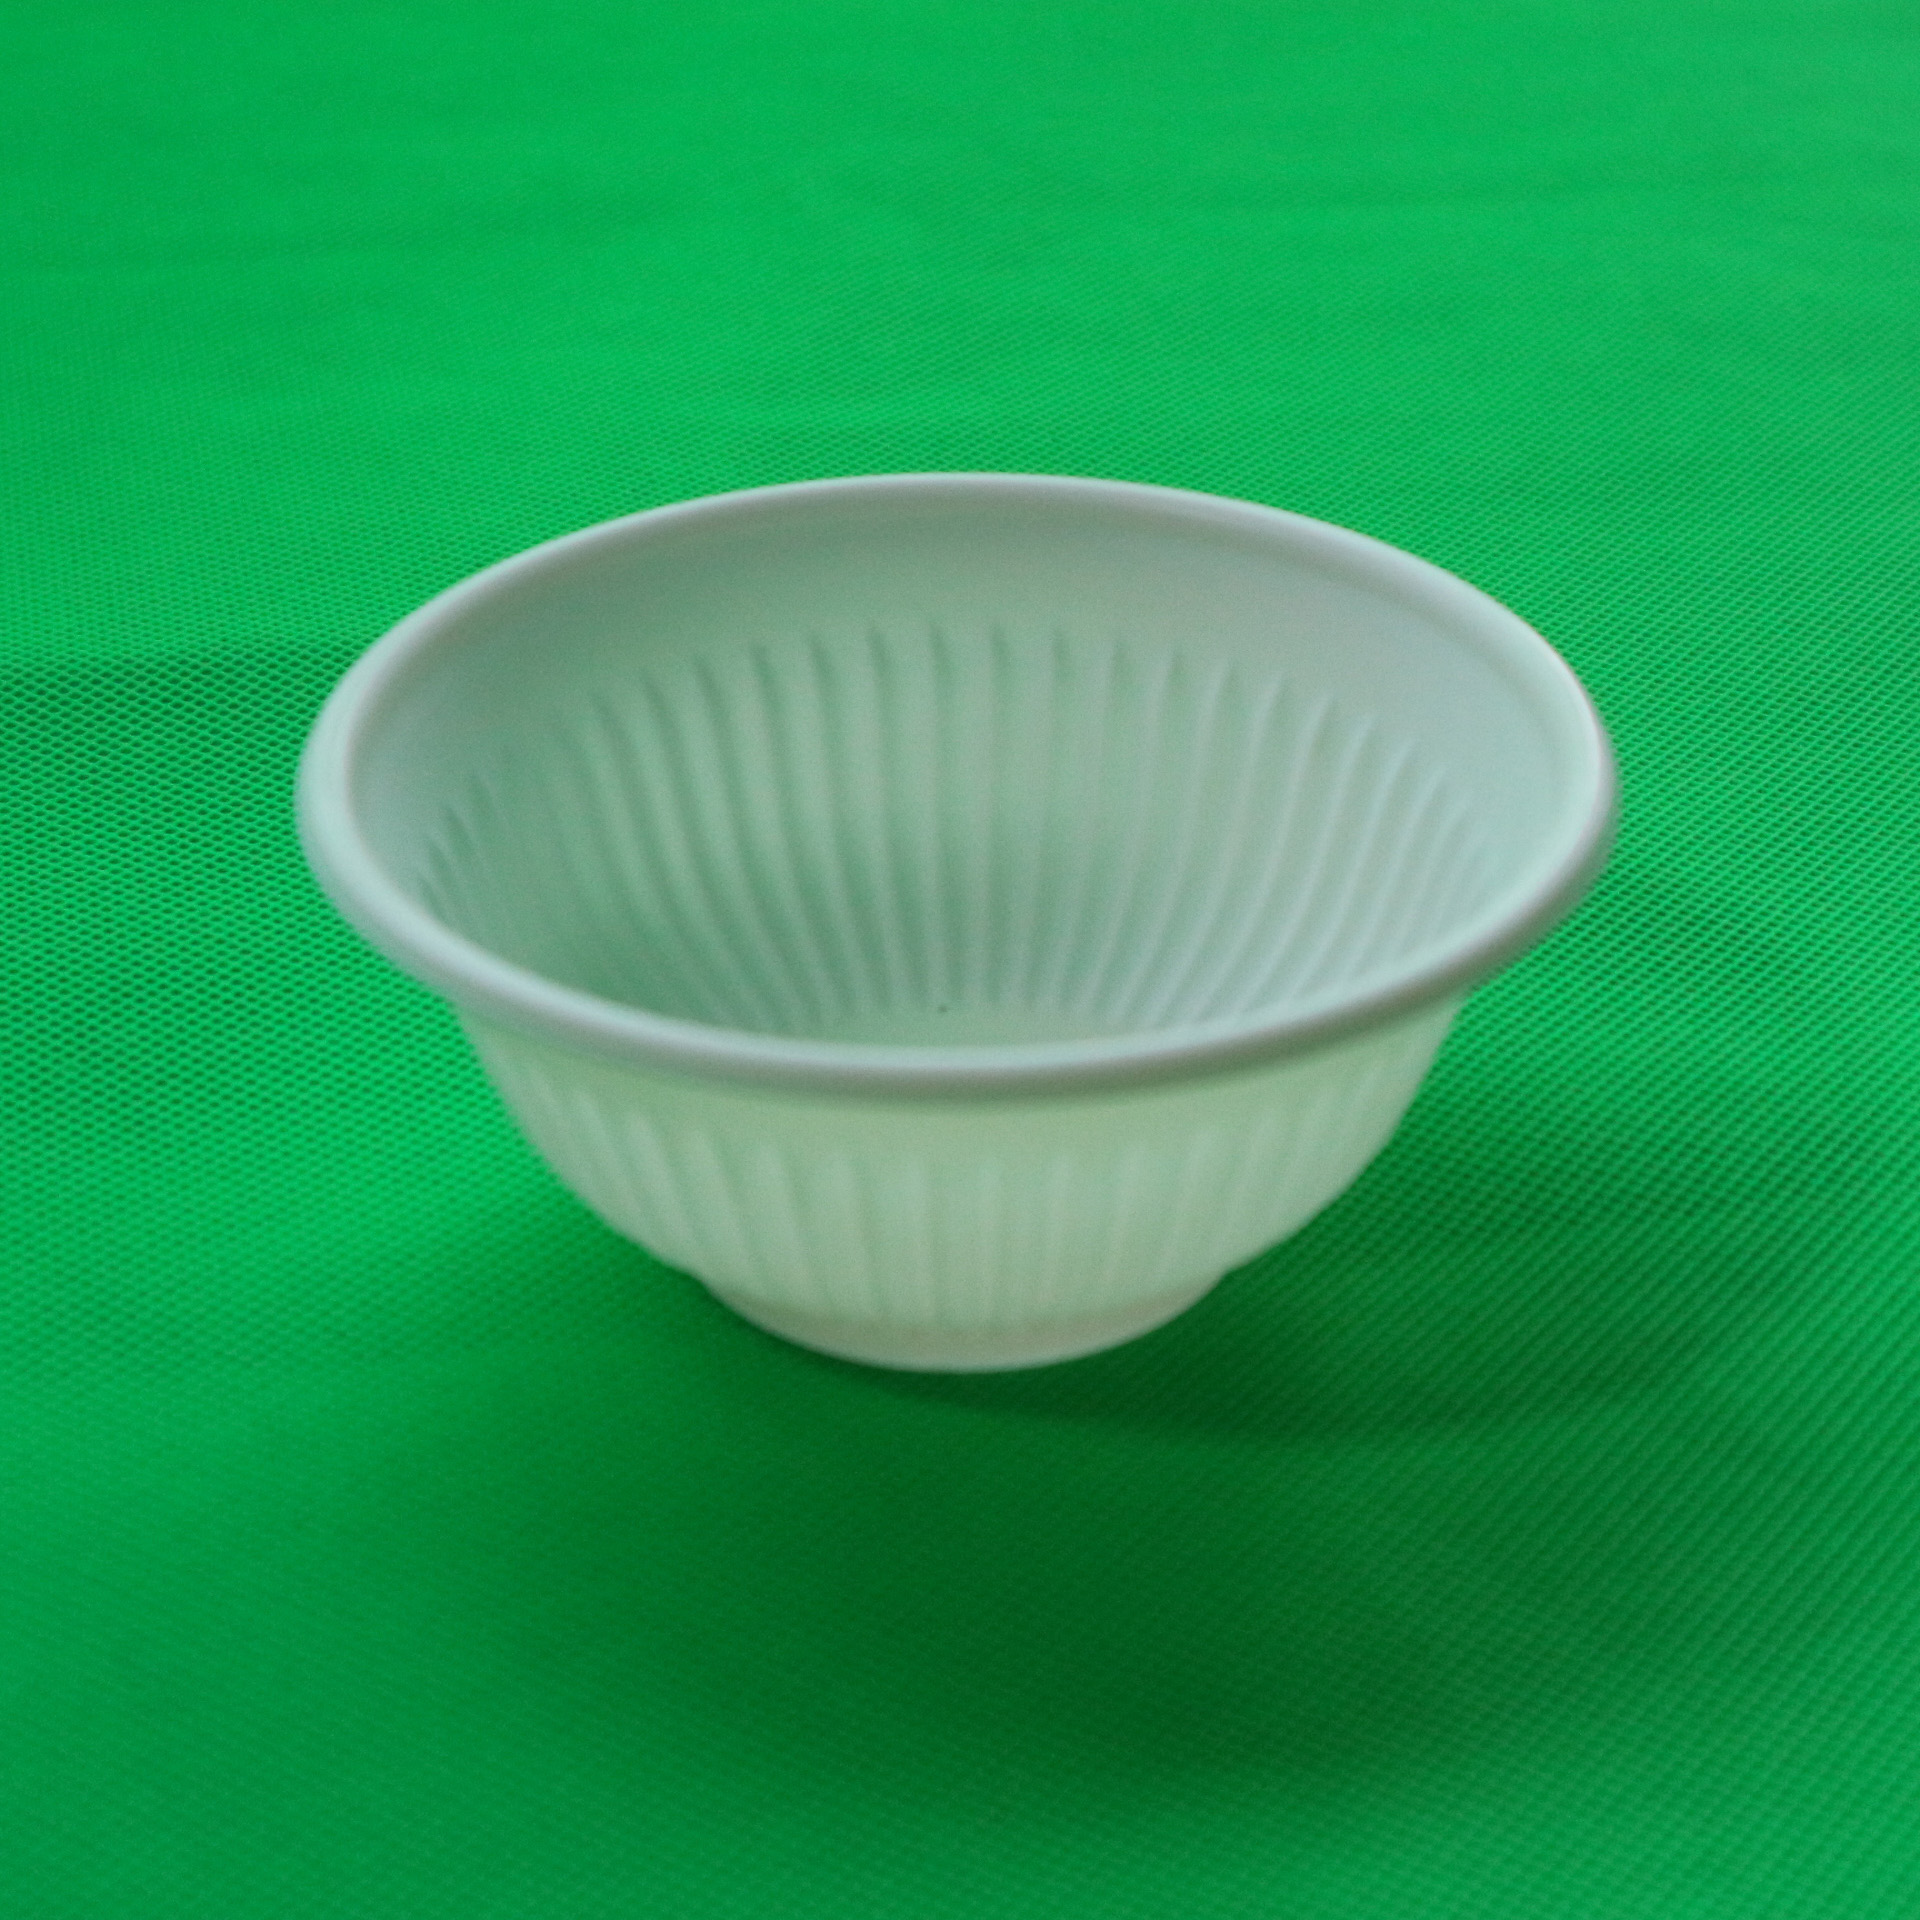 One Time Use Tableware Take Away Cornstarch Disposable Bowl